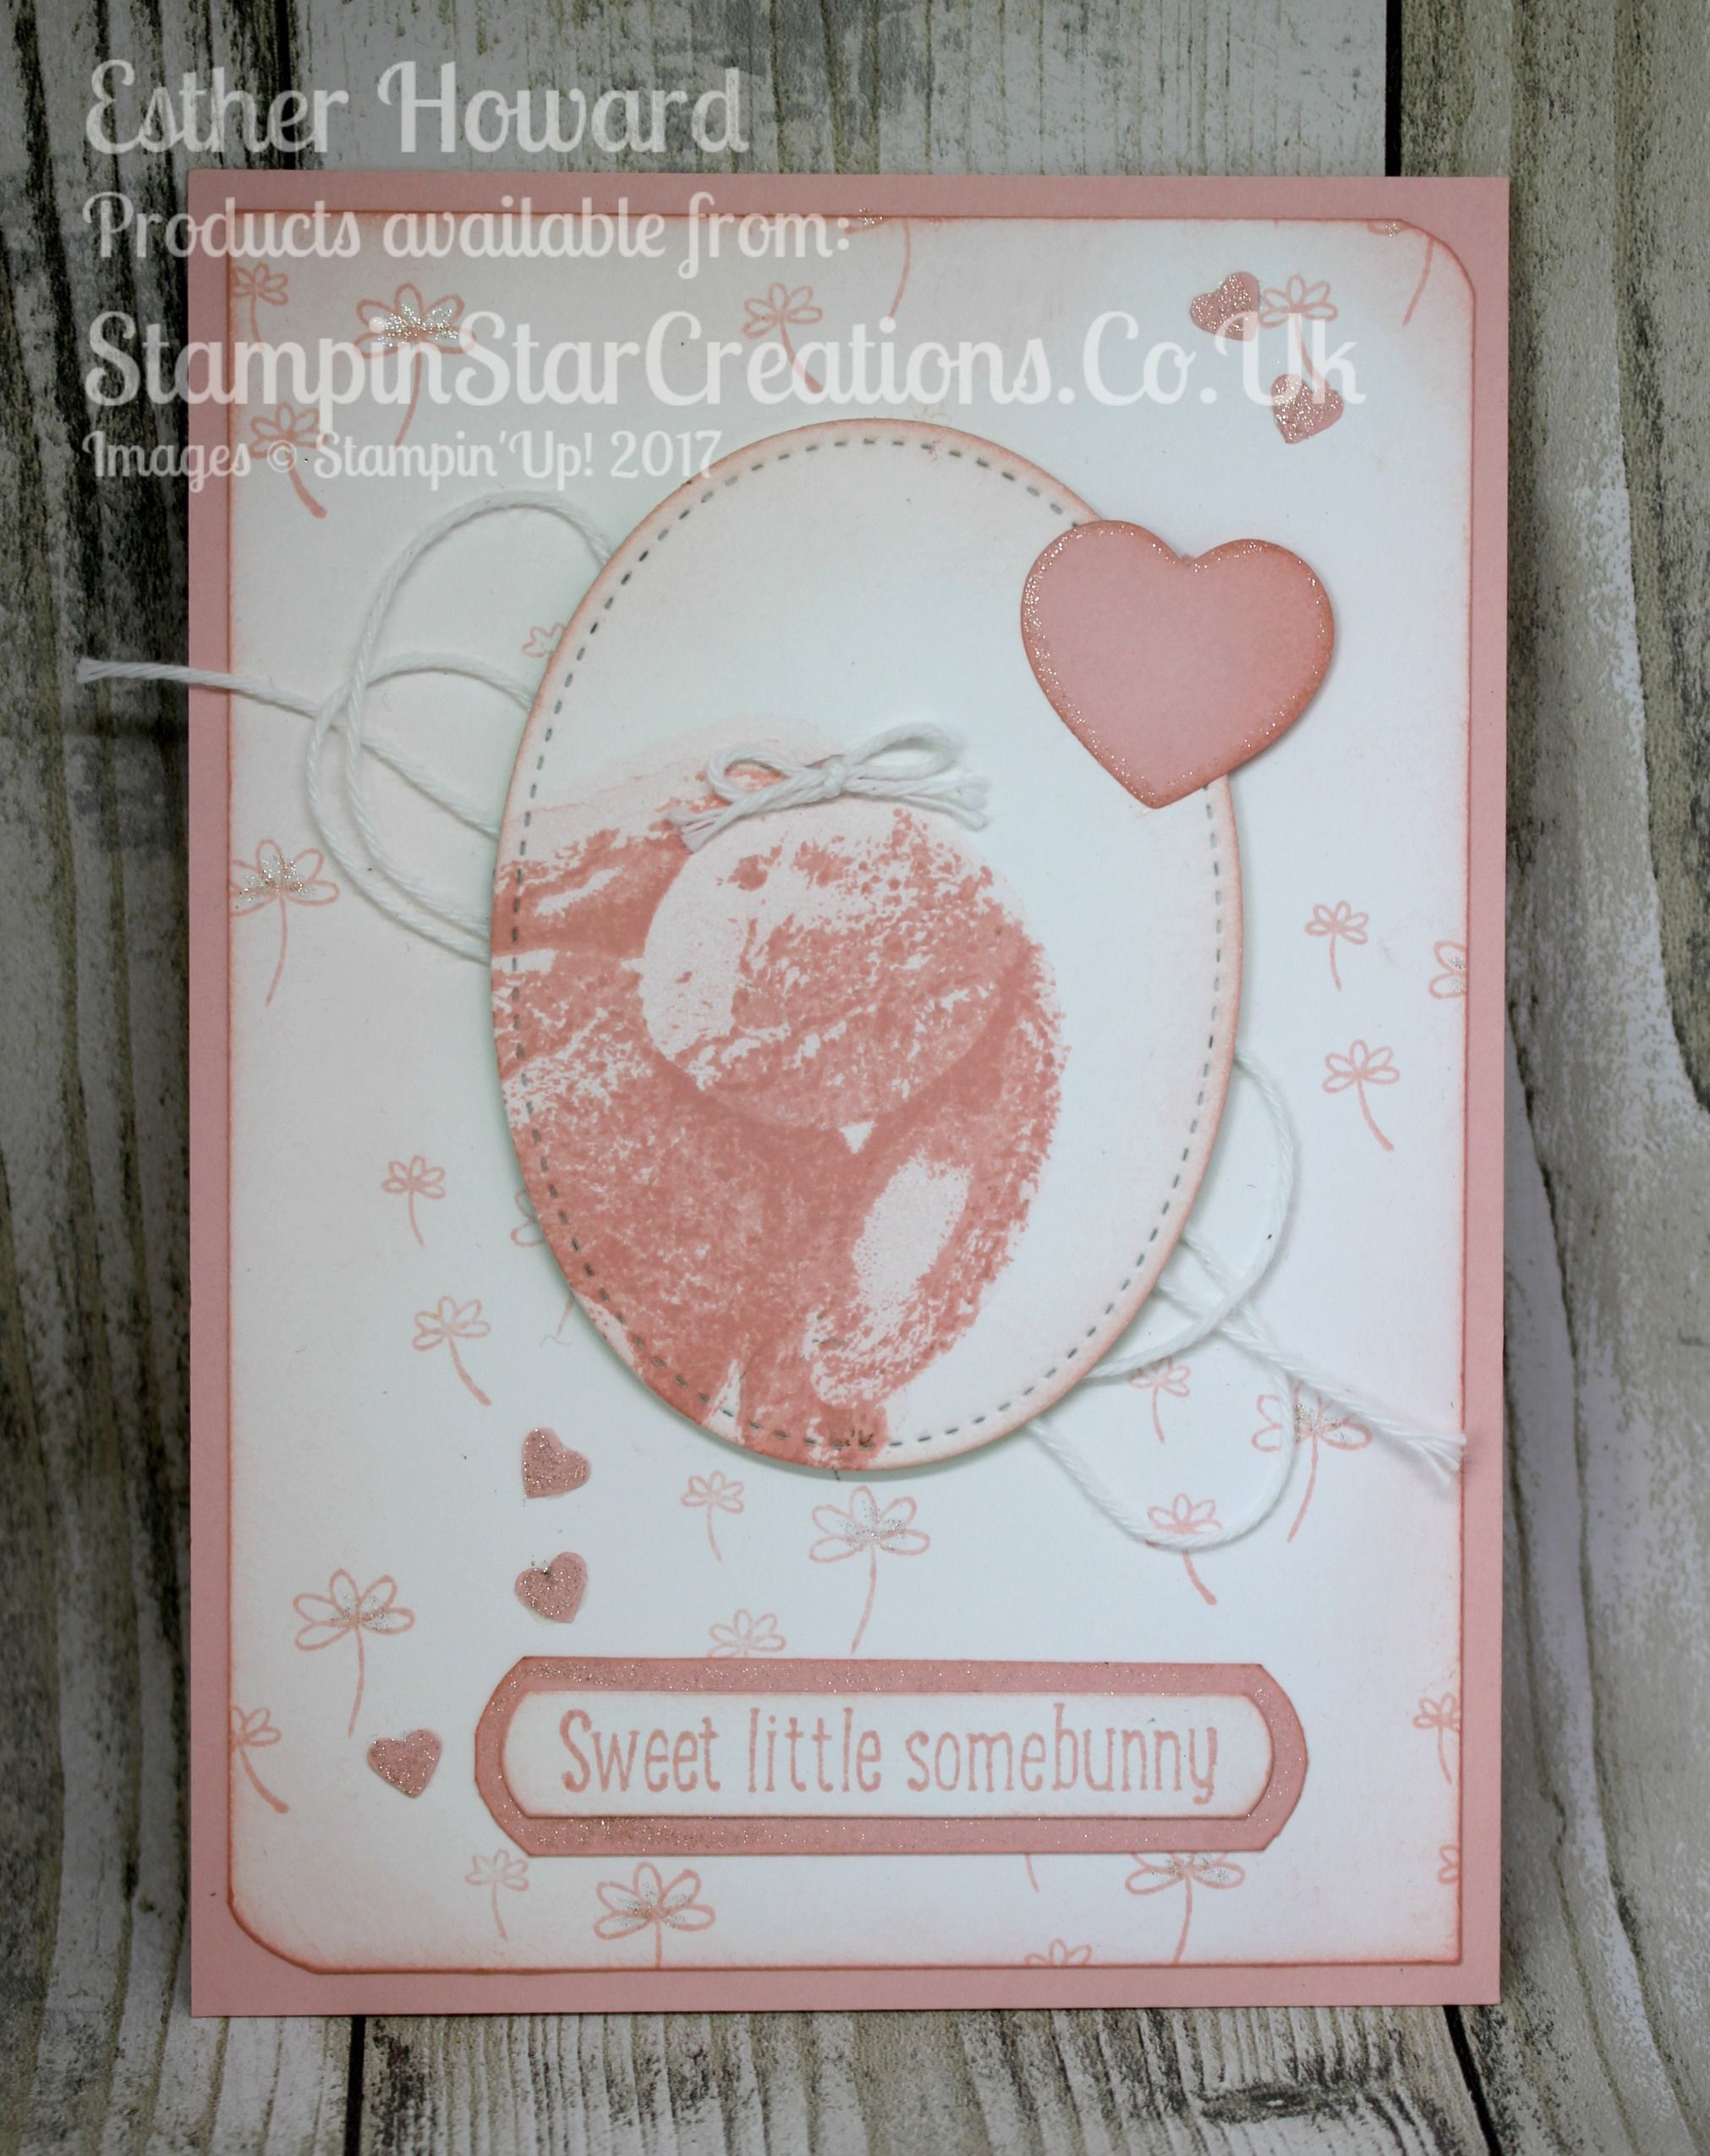 Introducing To You Brand New 2018 Stampin Up Product Card